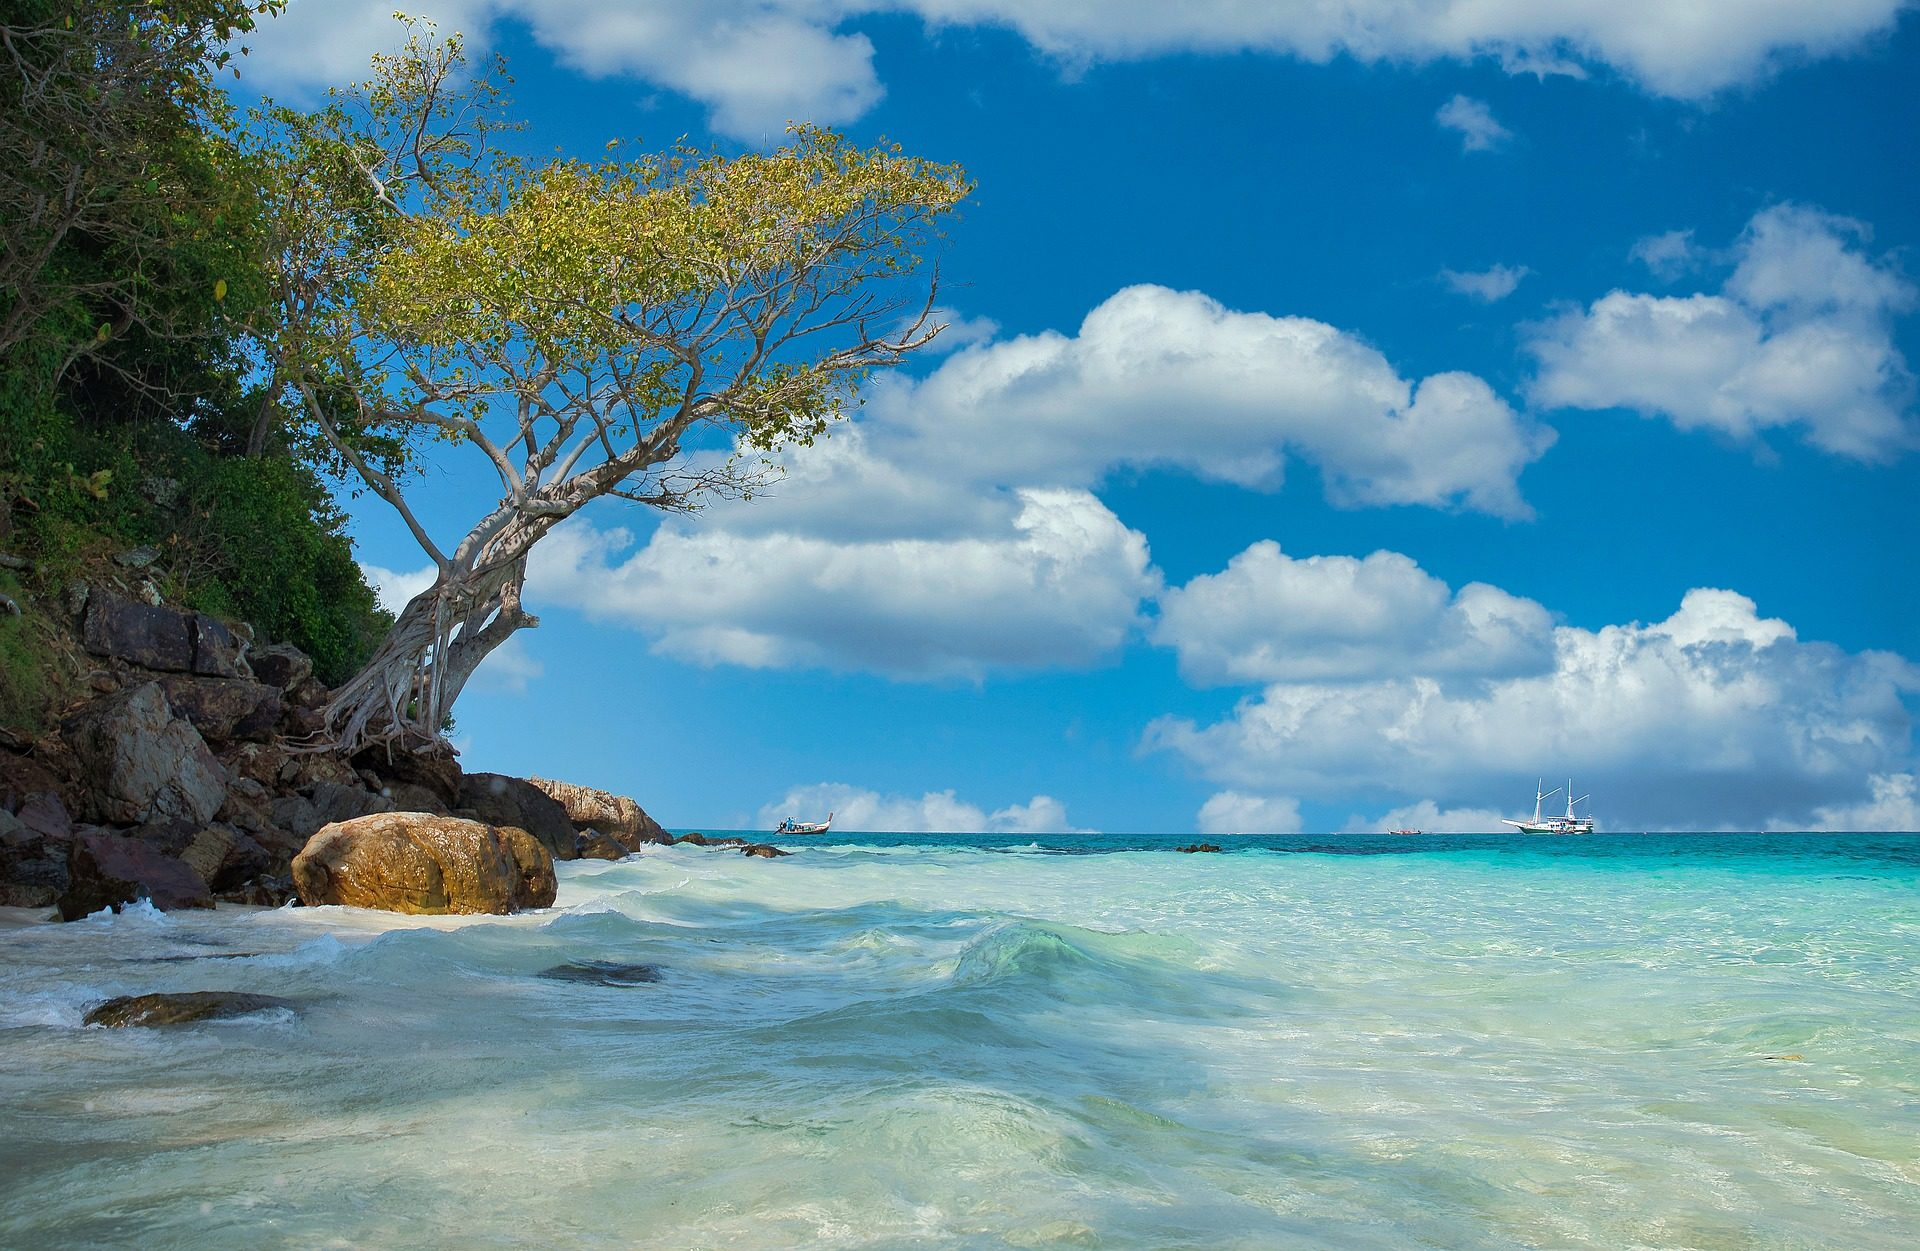 turquoise water of southeast Asia washing up on shore with lone tree